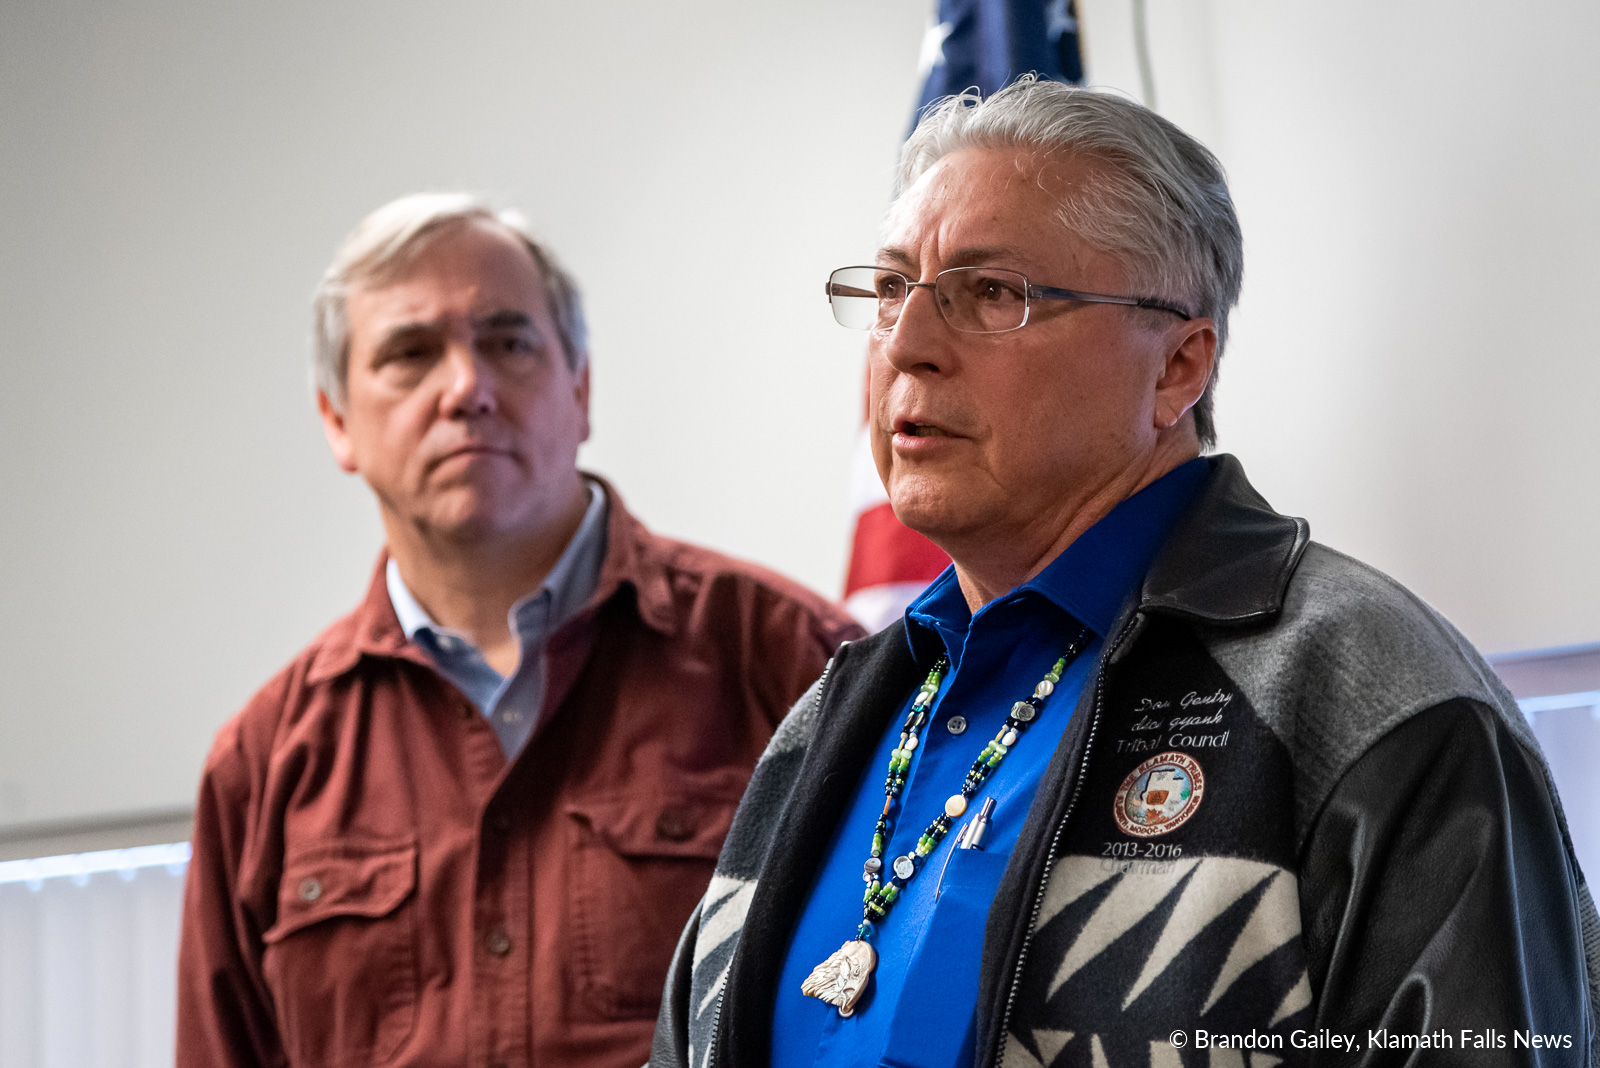 """""""I thank Senator Merkley for bringing folks in the Basin together to look at the real issues affecting Klamath Lake and the fish that are so important to us,"""" said Don Gentry, Chairman of the Klamath Tribes. February 23, 2019 (Brandon Gailey / Klamath Falls News)"""